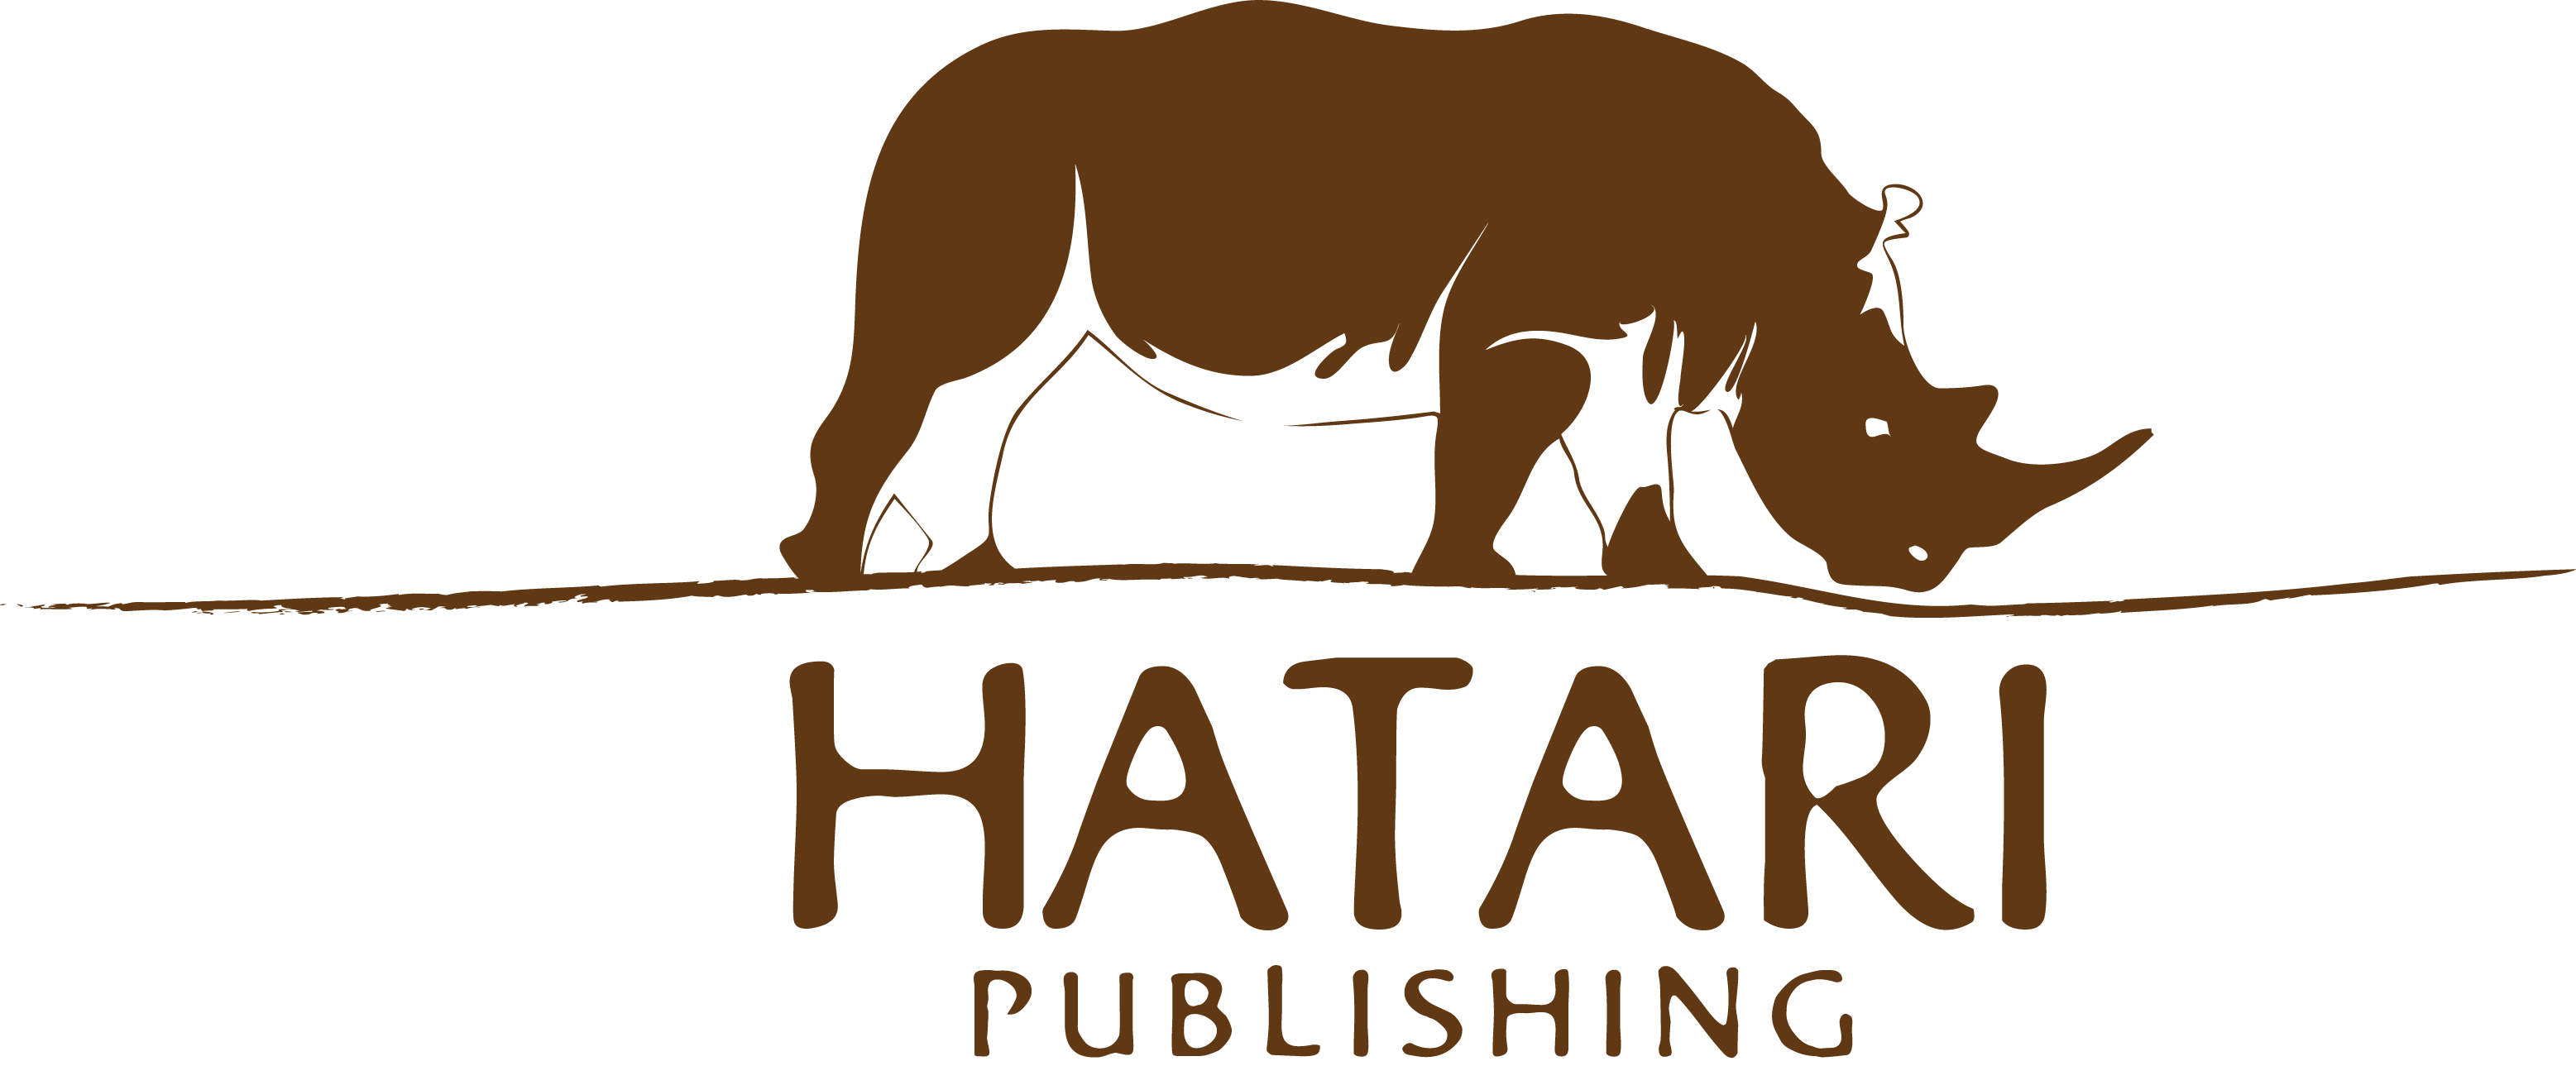 The Hatari Papers